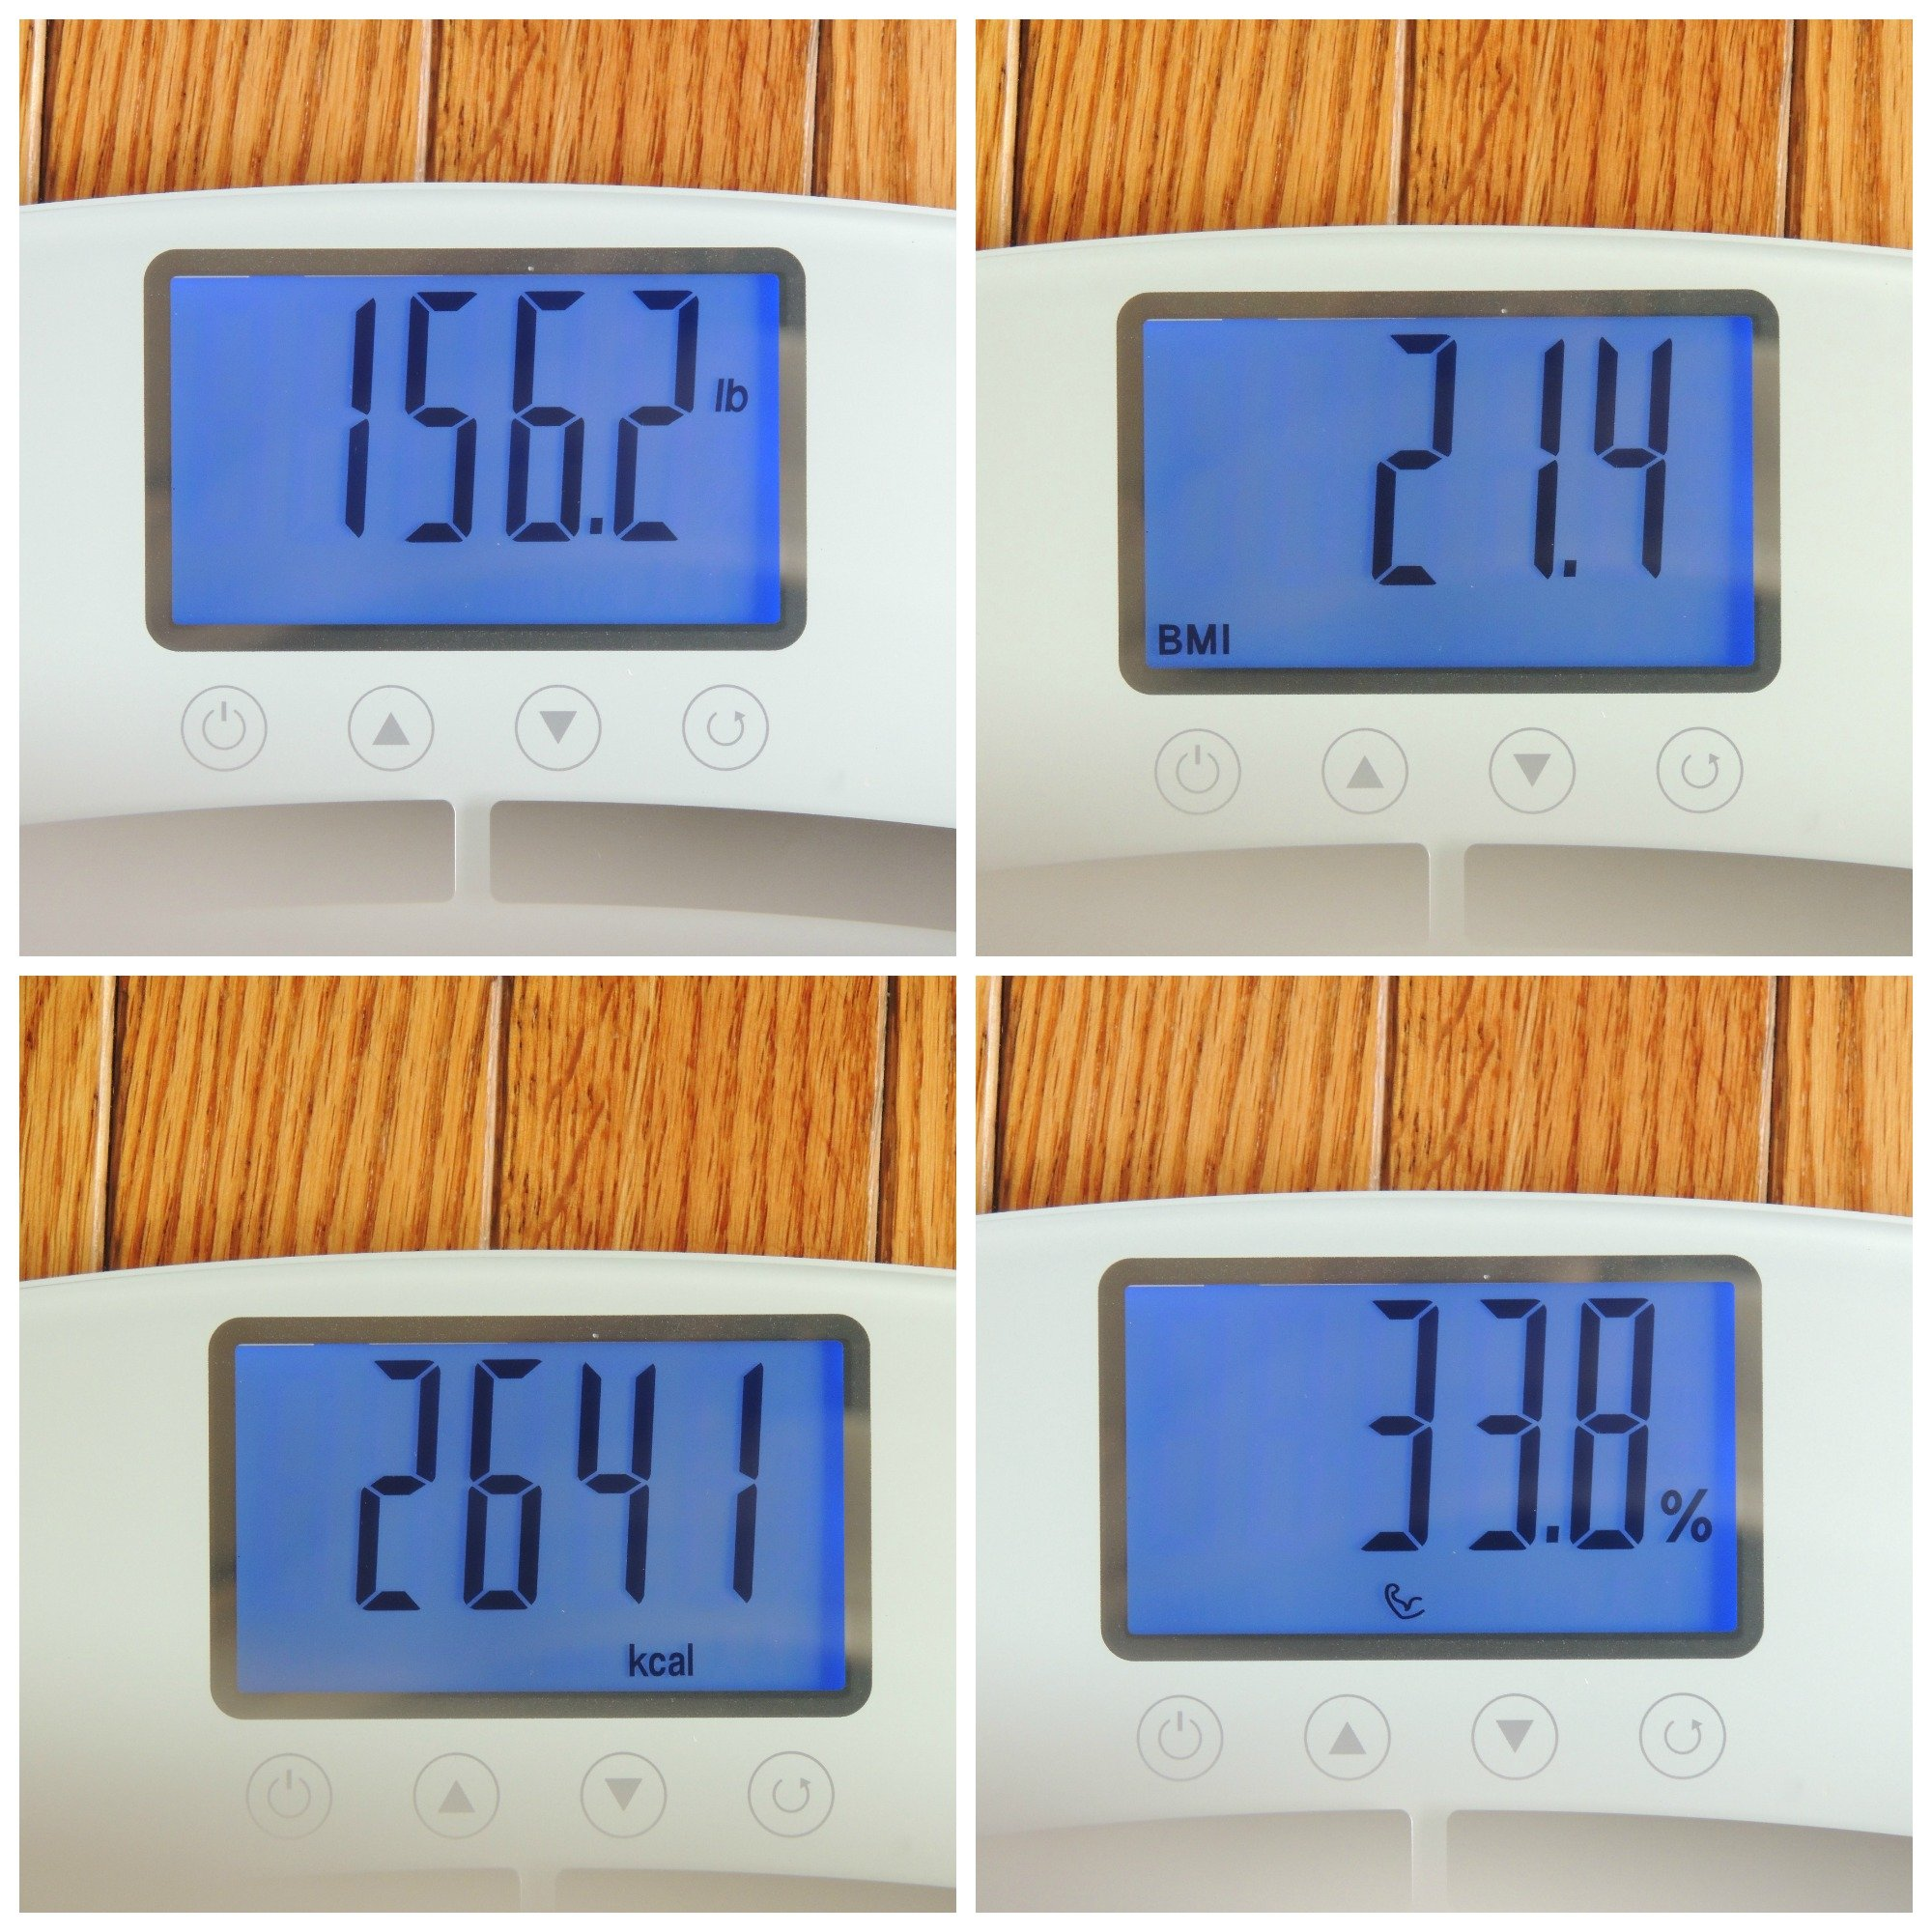 EatSmart Products Precision Body Fat Scale Bathroom Scale with 400 Pound Capacity, BMI and Step Off Technology